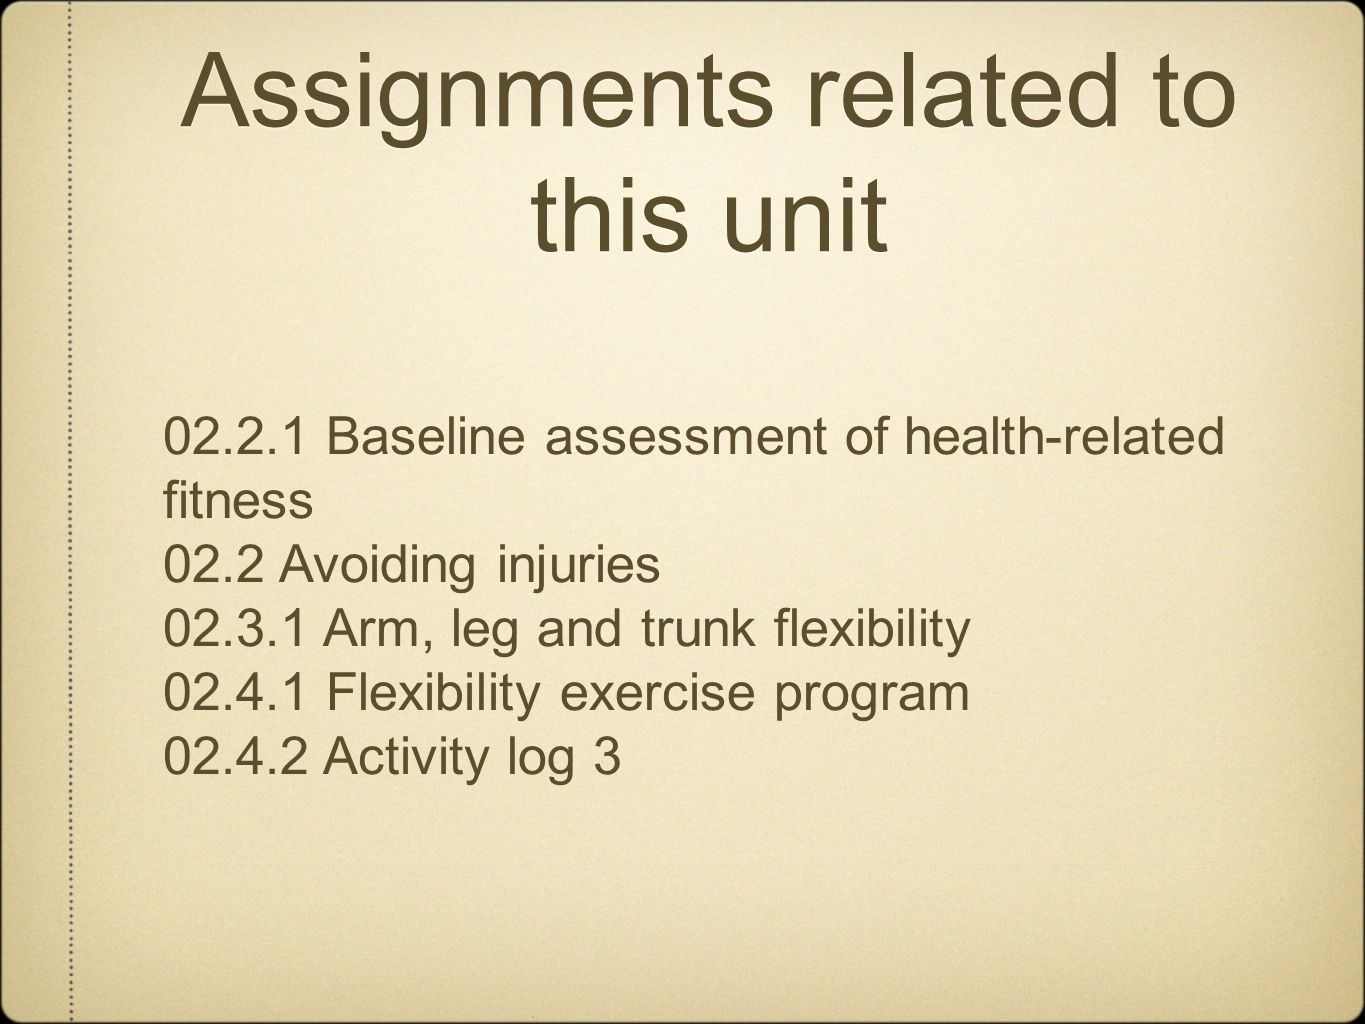 Assignments related to this unit 02.2.1 Baseline assessment of health-related fitness 02.2 Avoiding injuries 02.3.1 Arm, leg and trunk flexibility 02.4.1 Flexibility exercise program 02.4.2 Activity log 3